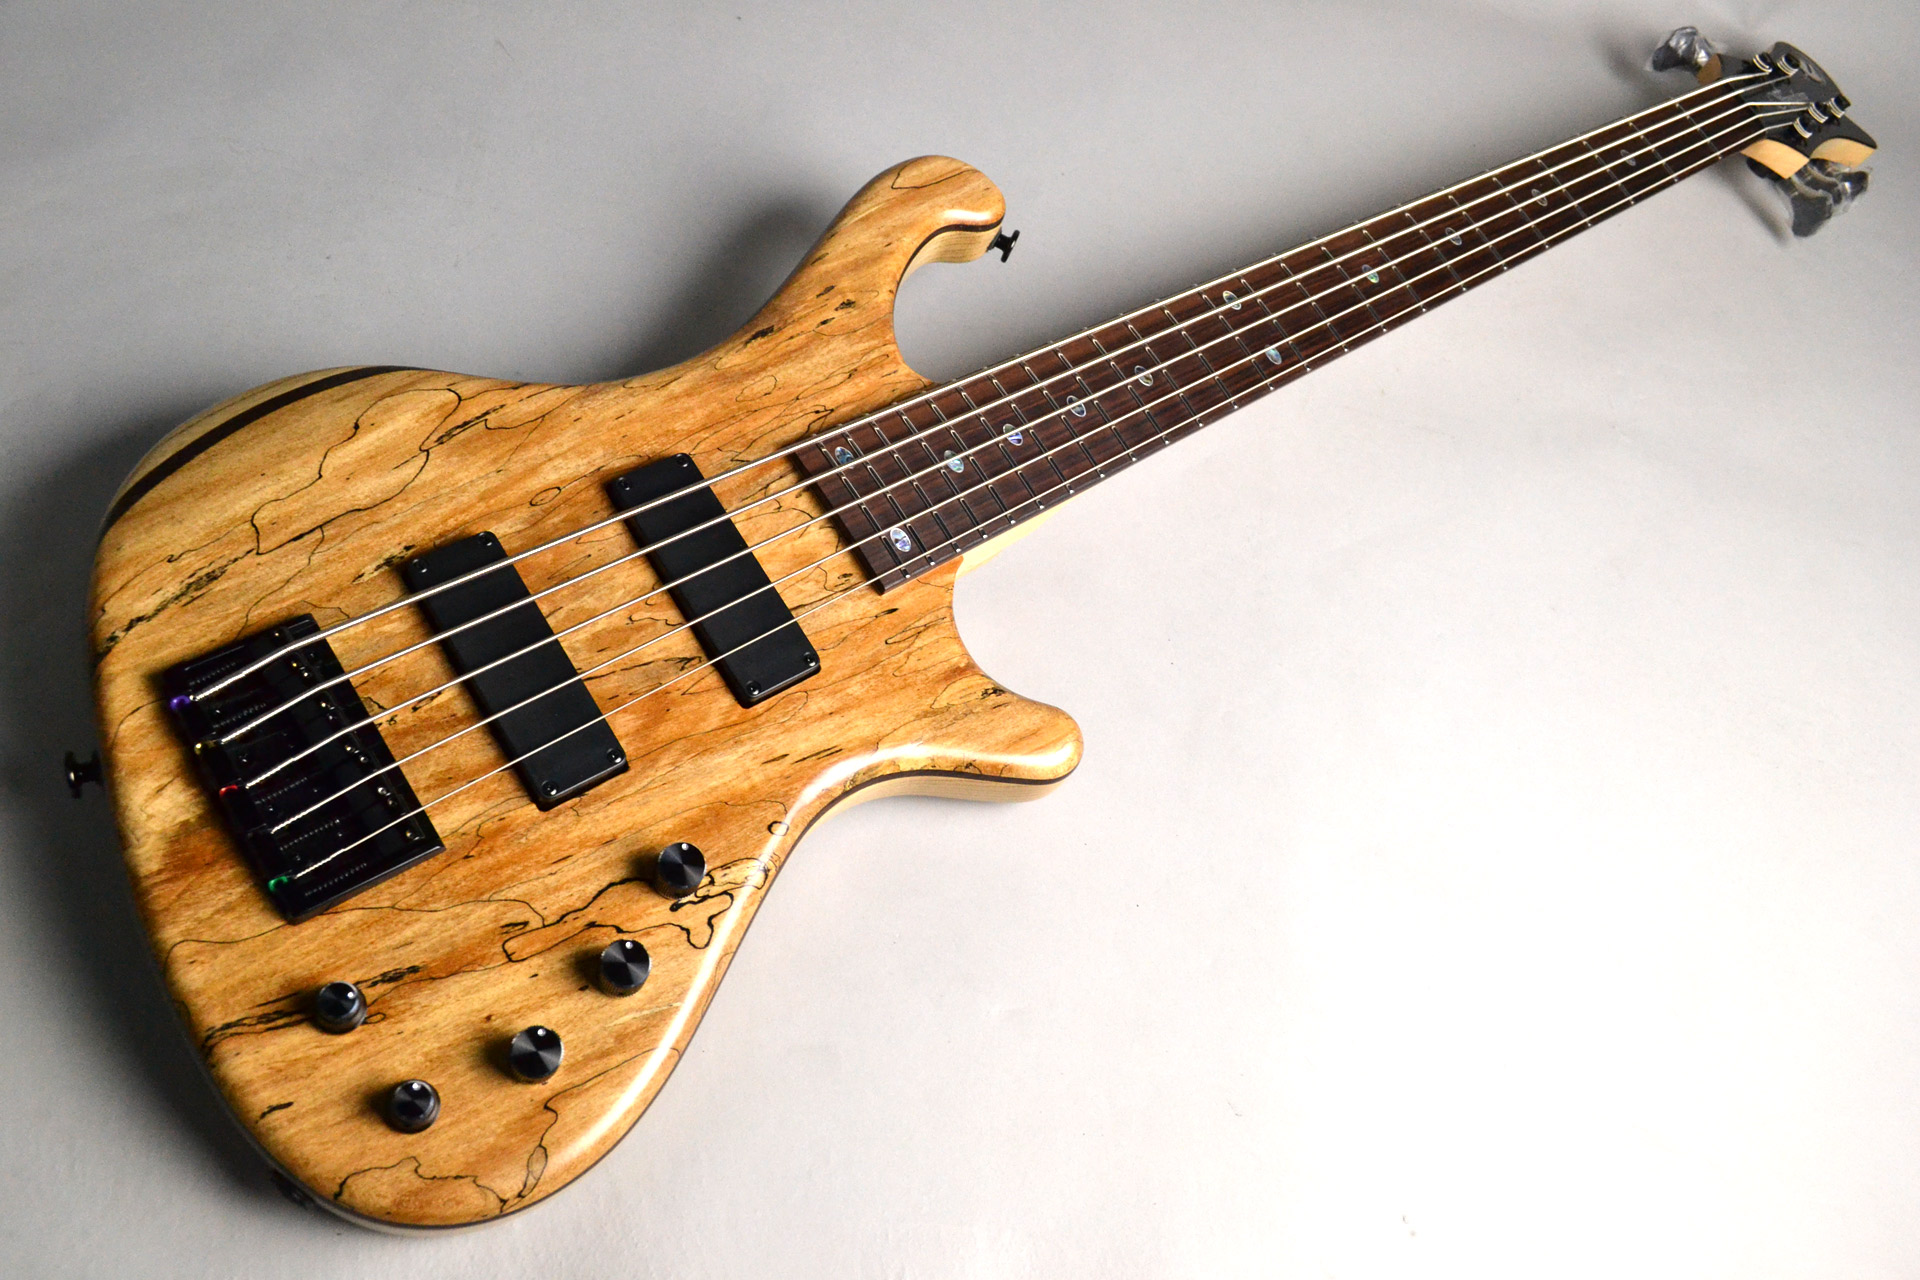 Dulake Flat 5st Spalted Maple/Ash